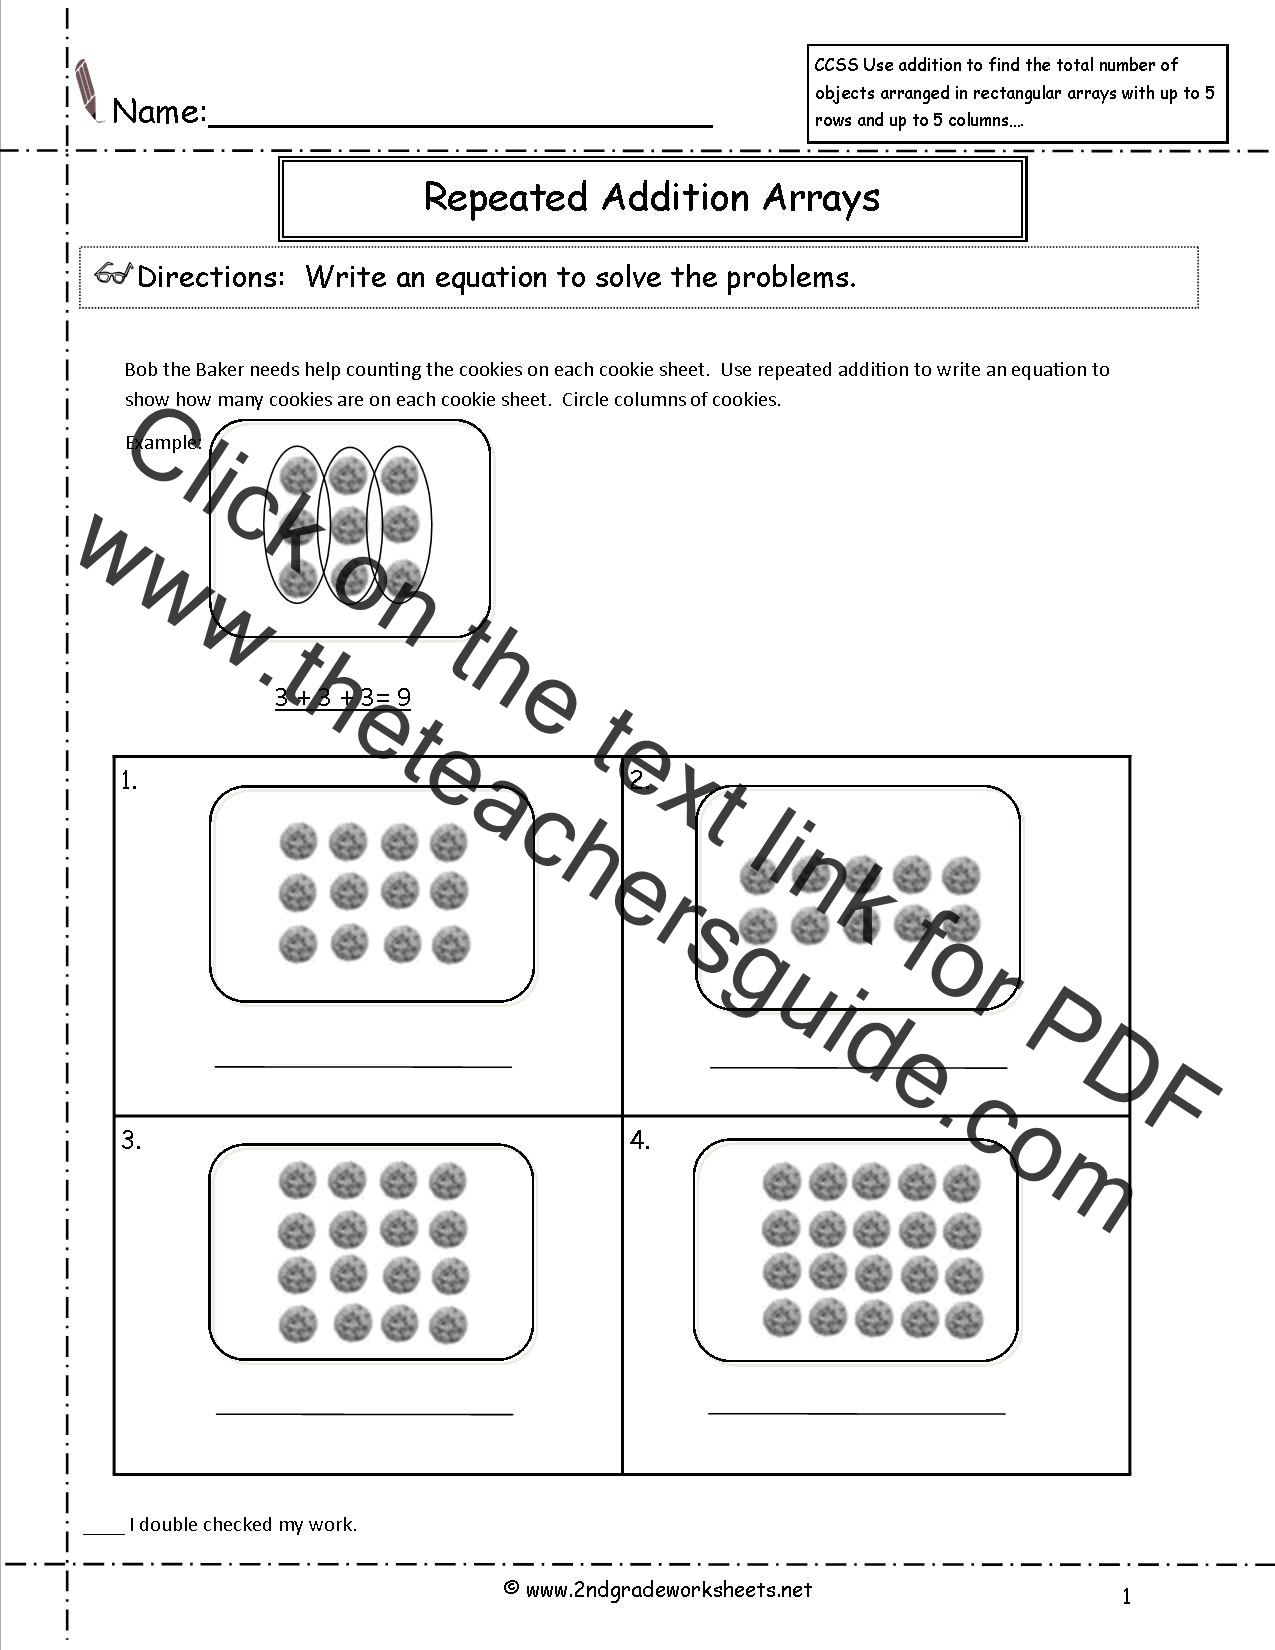 Worksheet 2nd Grade Common Core Math Worksheets 2nd grade math common core state standards worksheets ccss 2 oa 4 worksheets